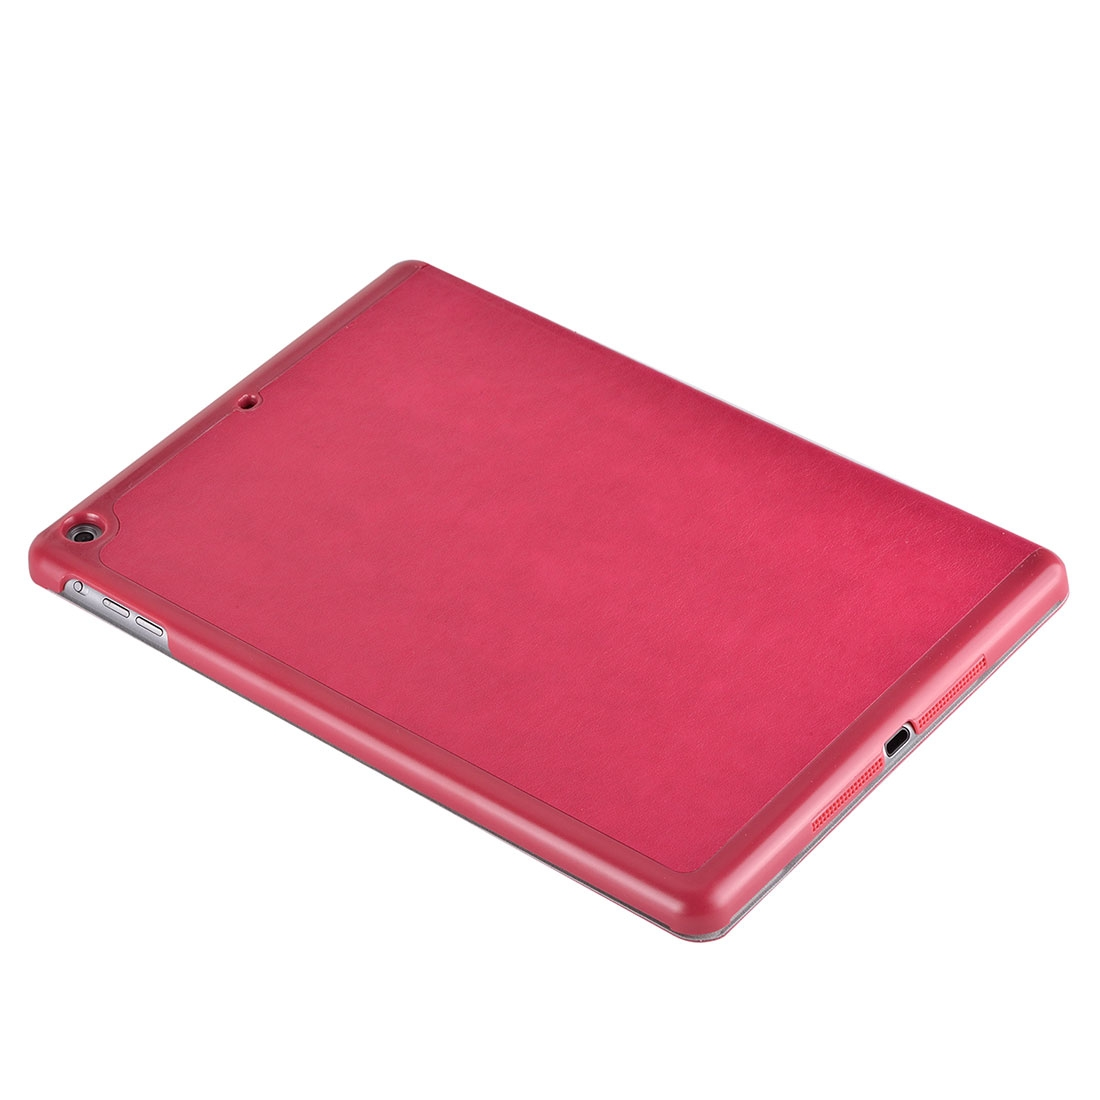 iPad Air Cover Features A Stylish Protective Genuine Leather Casing And A Quad Fold Stand (Magenta)